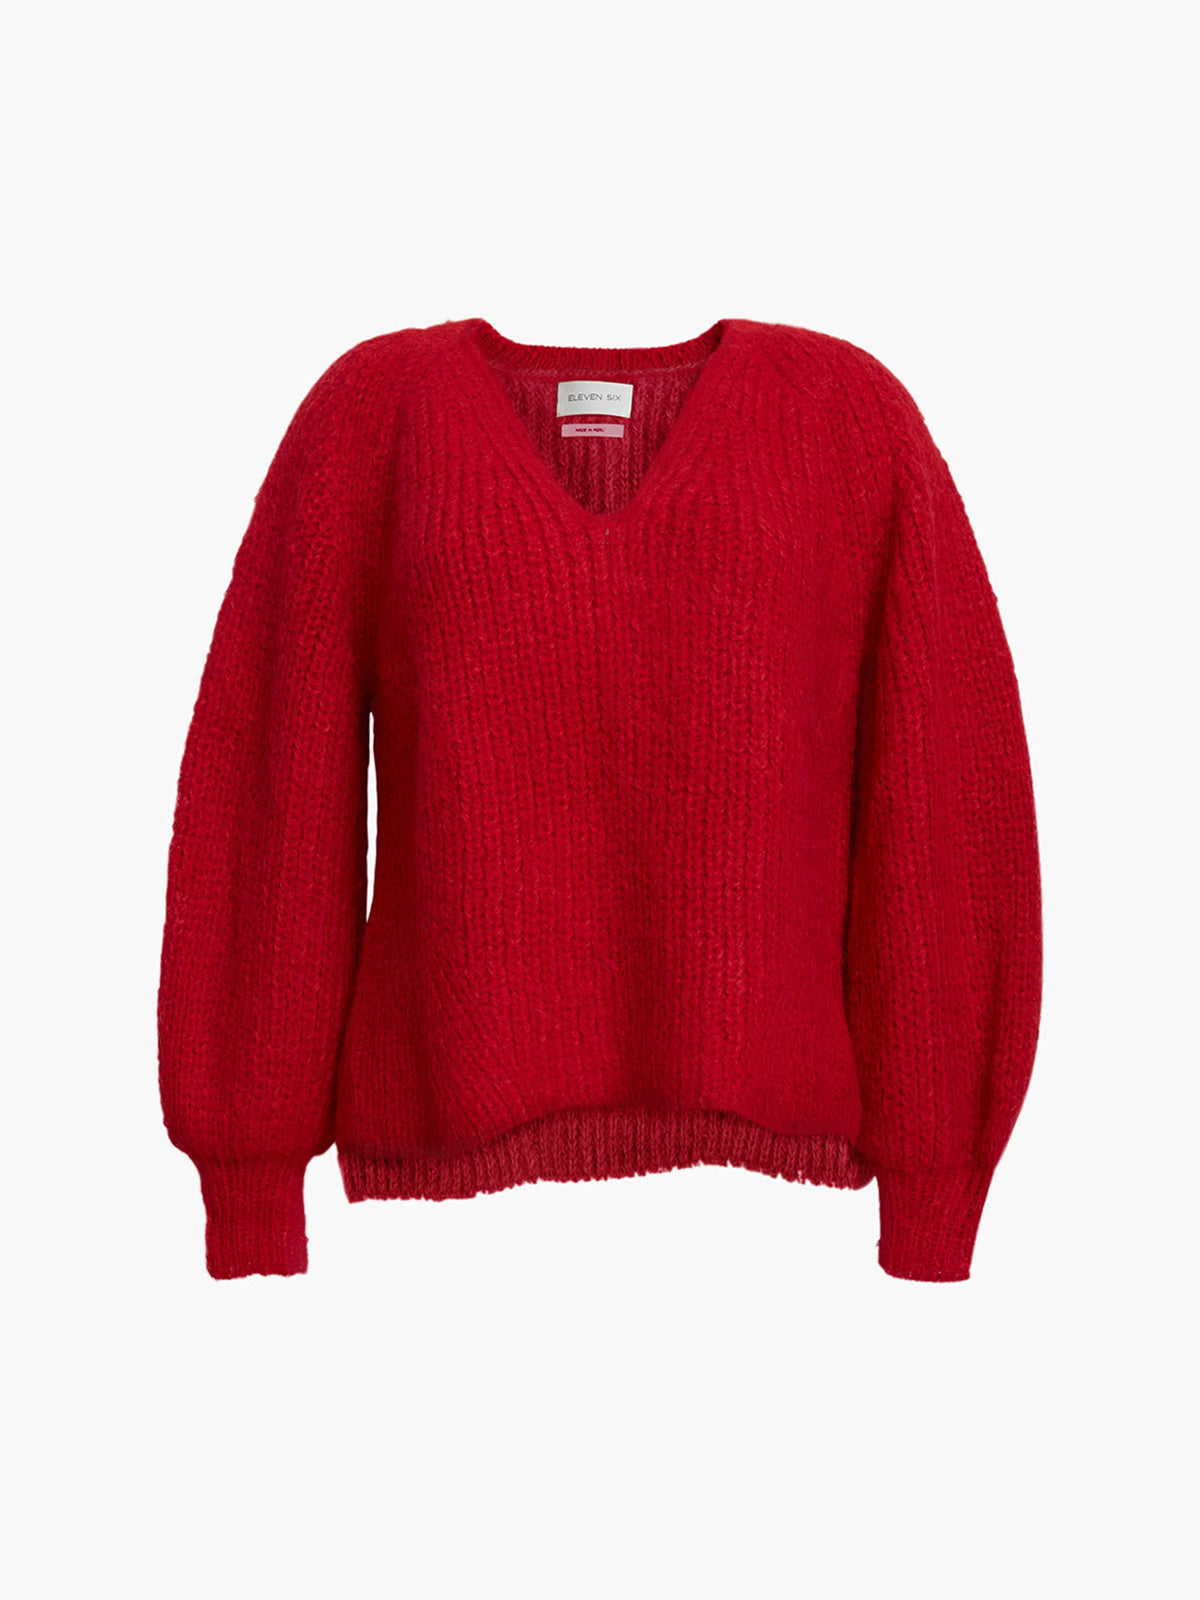 Tess Sweater | Persimmon Red Tess Sweater | Persimmon Red